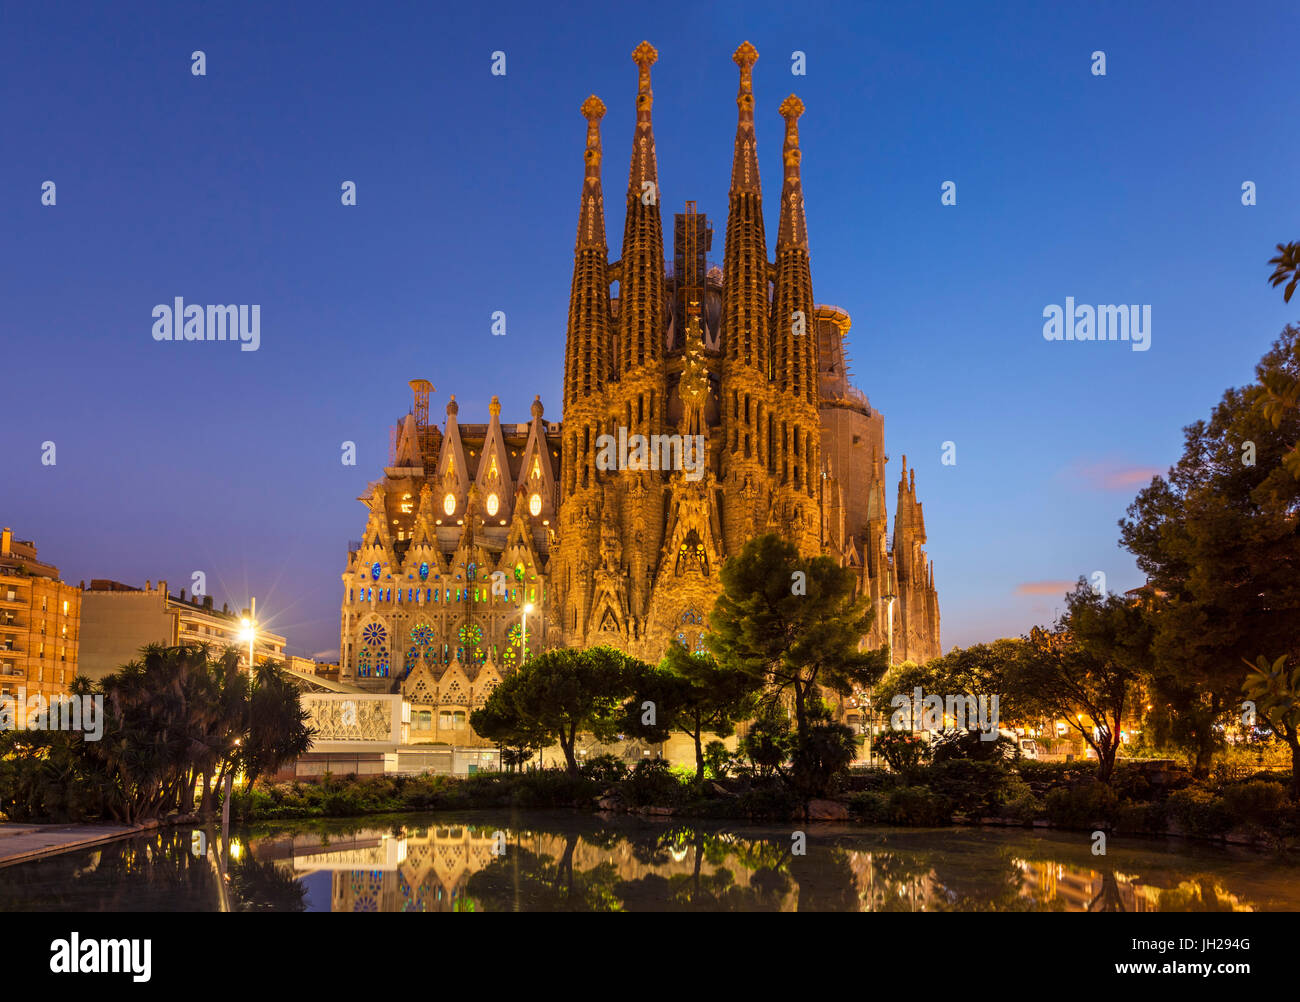 La Sagrada Familia church lit up at night designed by Antoni Gaudi, UNESCO, reflected in pool, Barcelona, Catalonia, - Stock Image